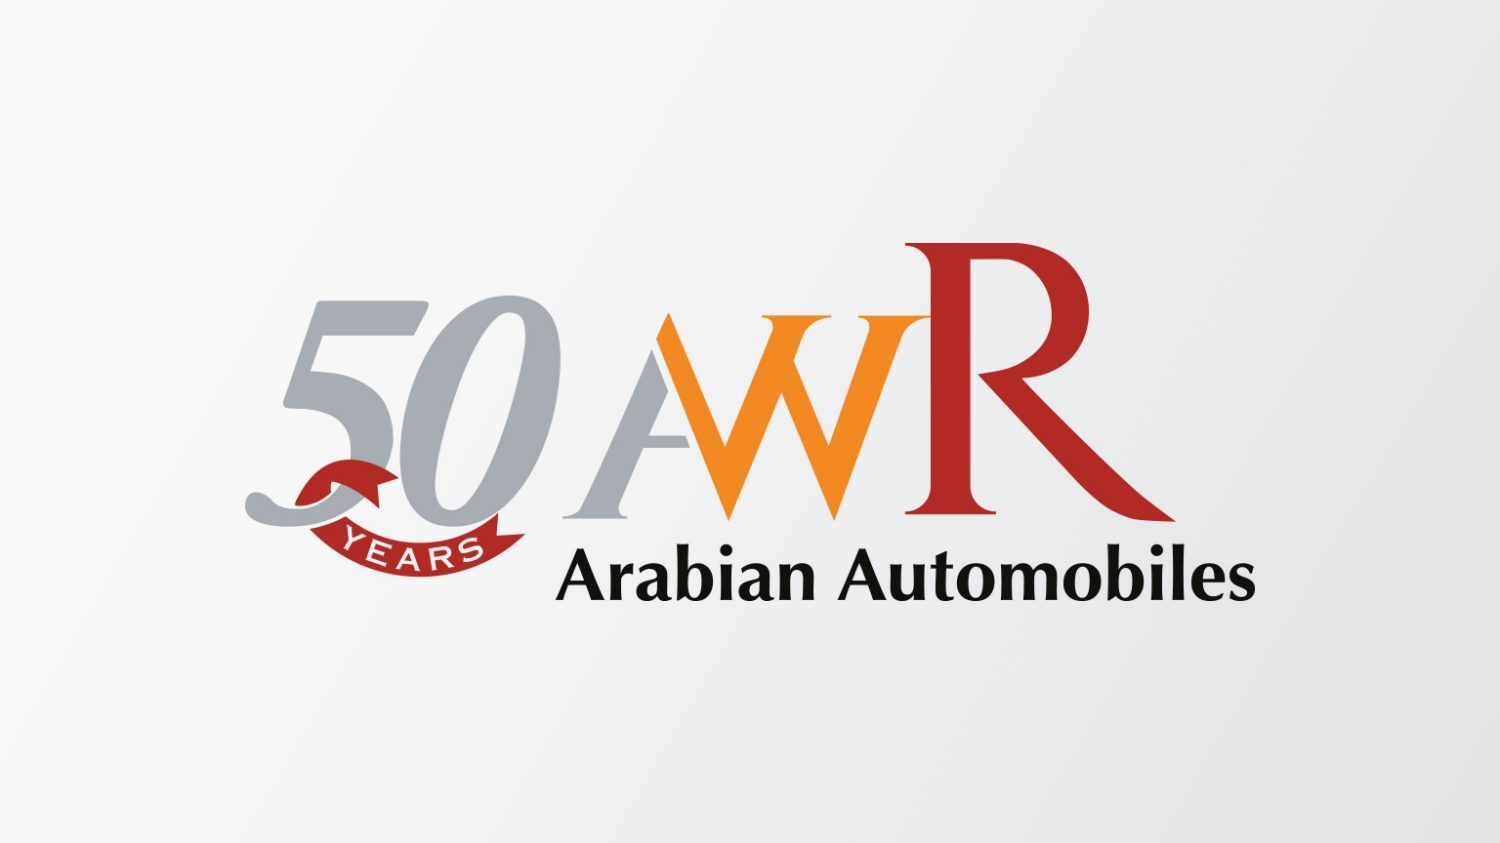 AW Rostamani 50 Years - Arabian Automobiles